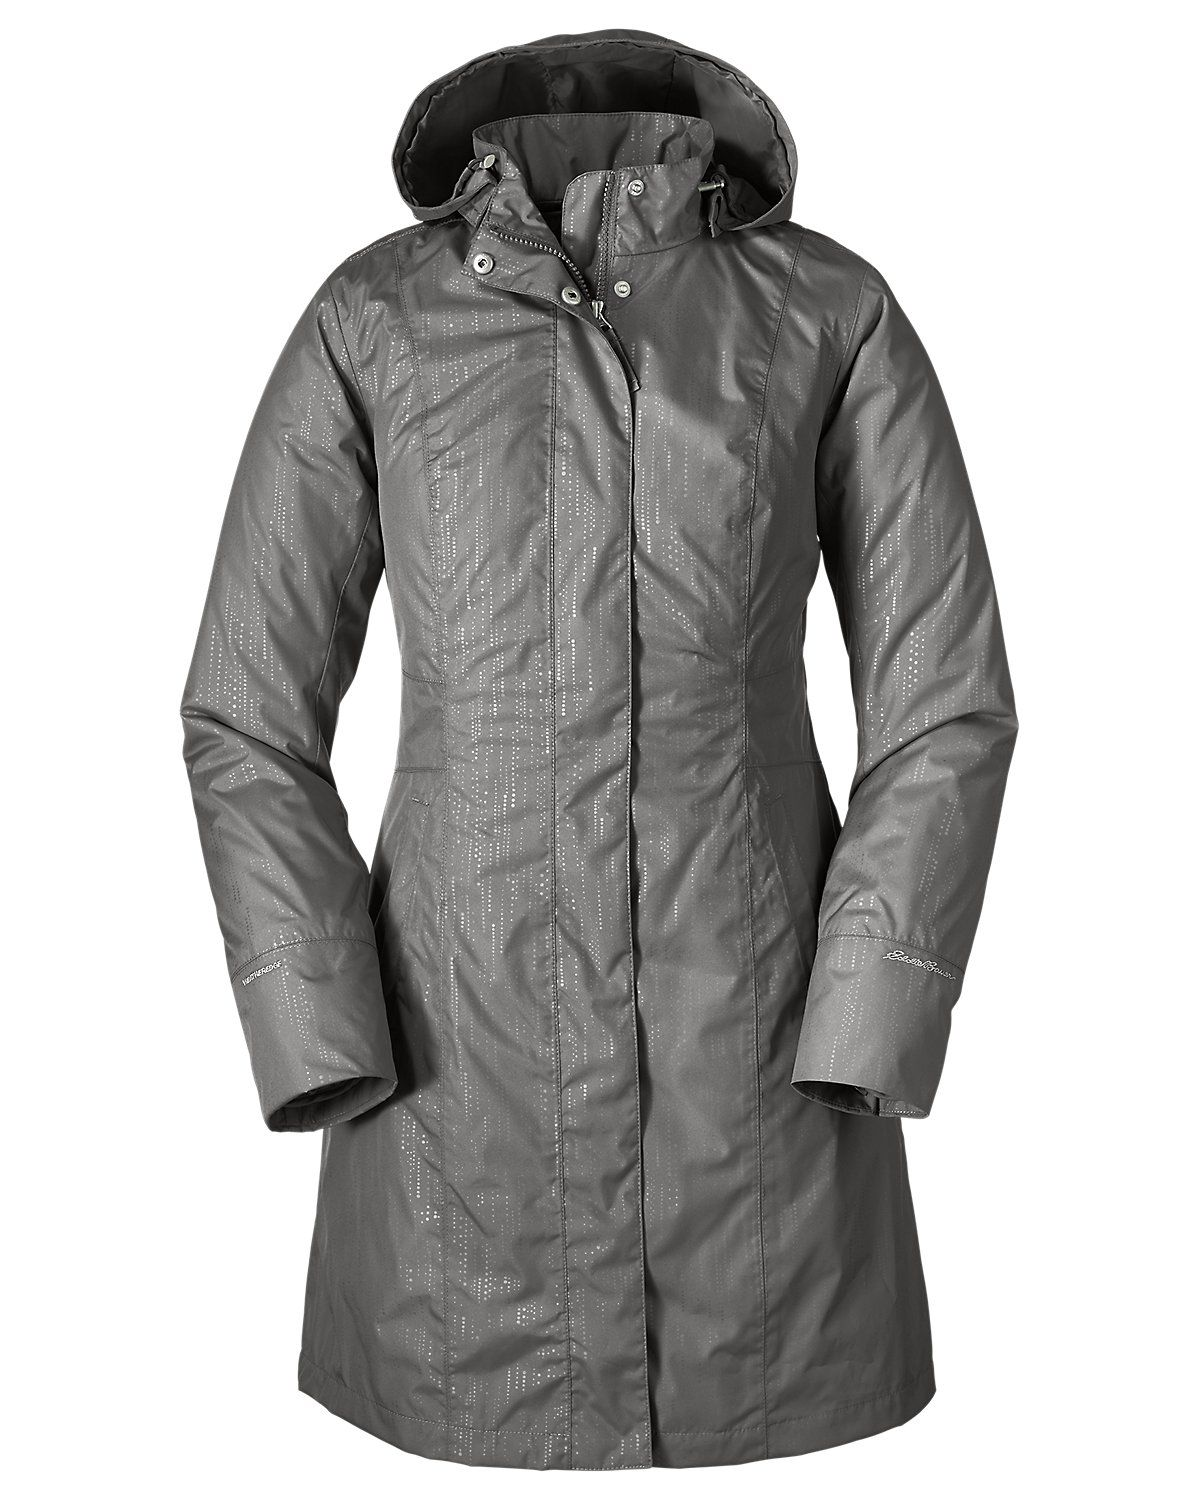 72185a2d1 Women's Girl On The Go Insulated Trench Coat   raincoats   Coat ...